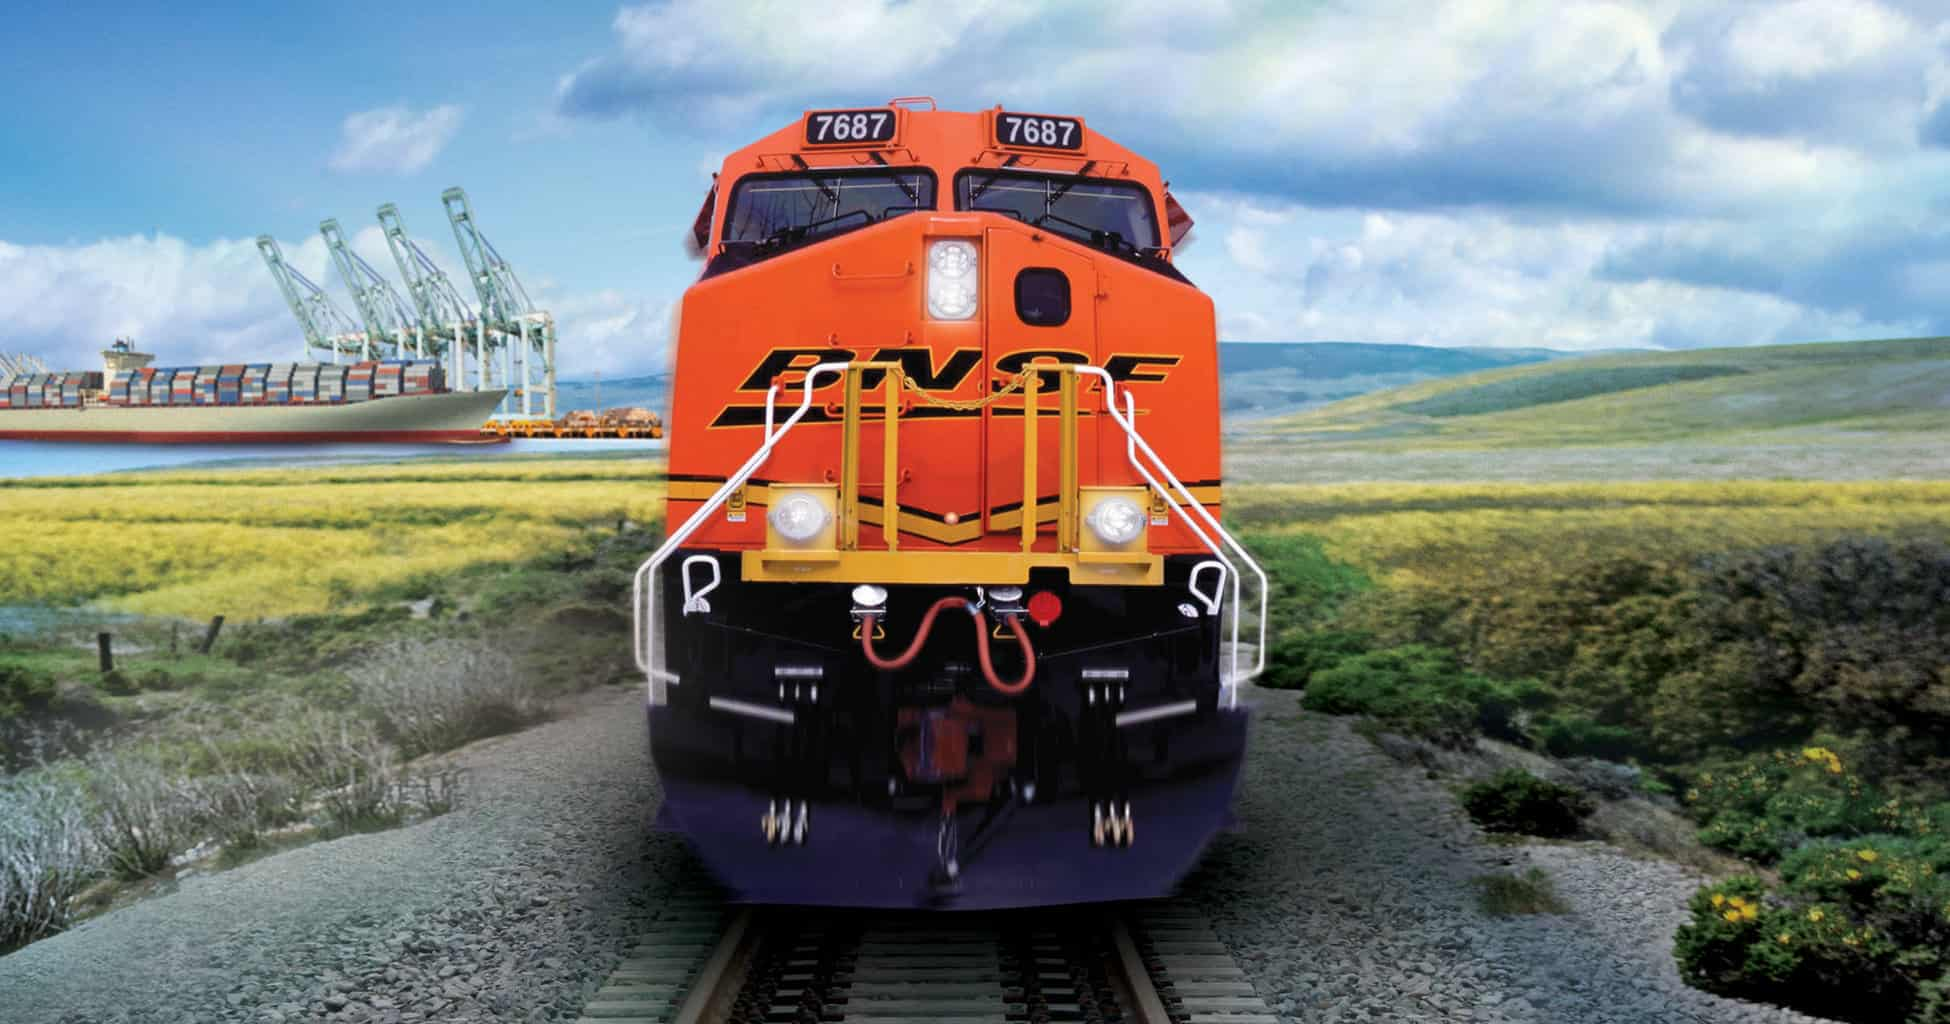 BNSF's second quarter OR comes in weakest of the class 1